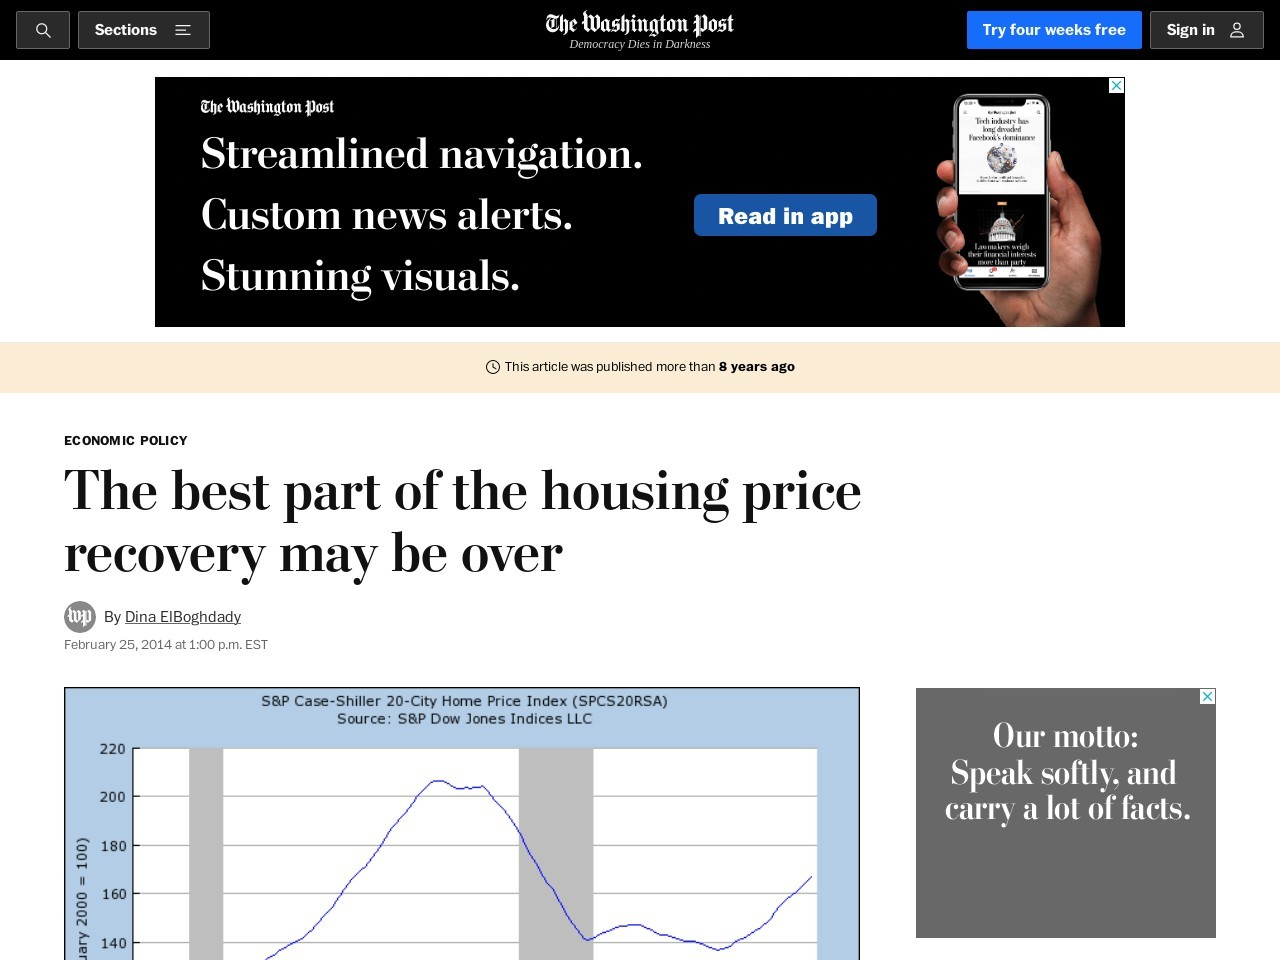 The best part of the housing price recovery may be over